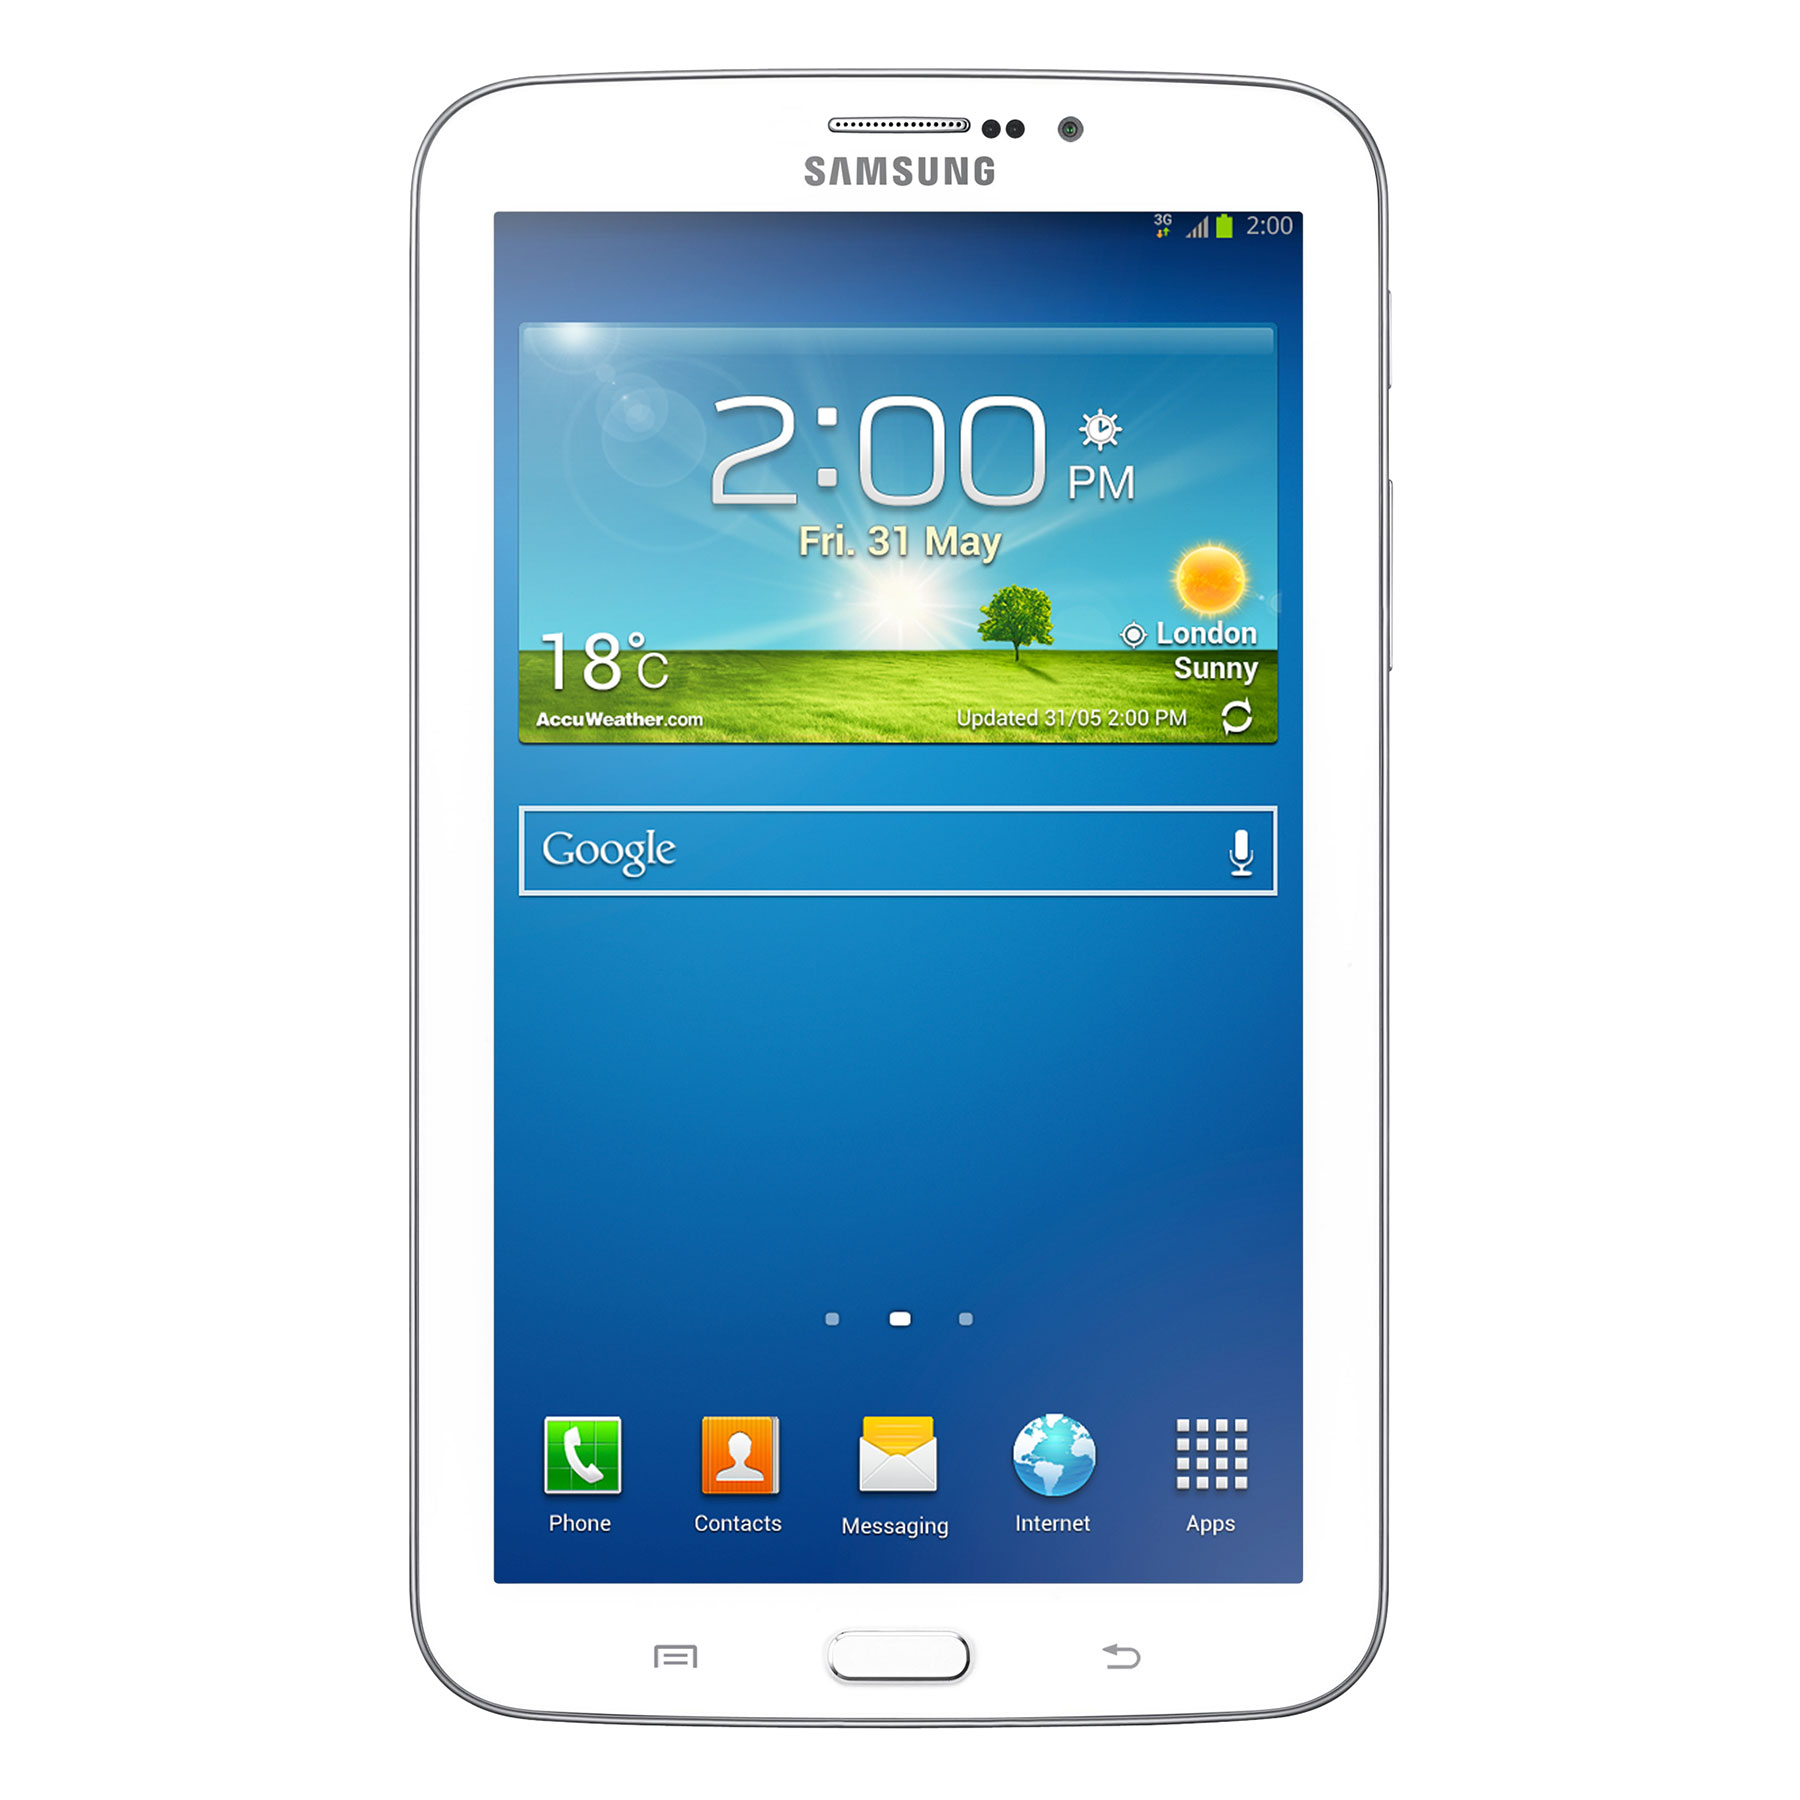 samsung galaxy tab 3 7 3g sm t2110 blanche 16 go tablette tactile samsung sur. Black Bedroom Furniture Sets. Home Design Ideas